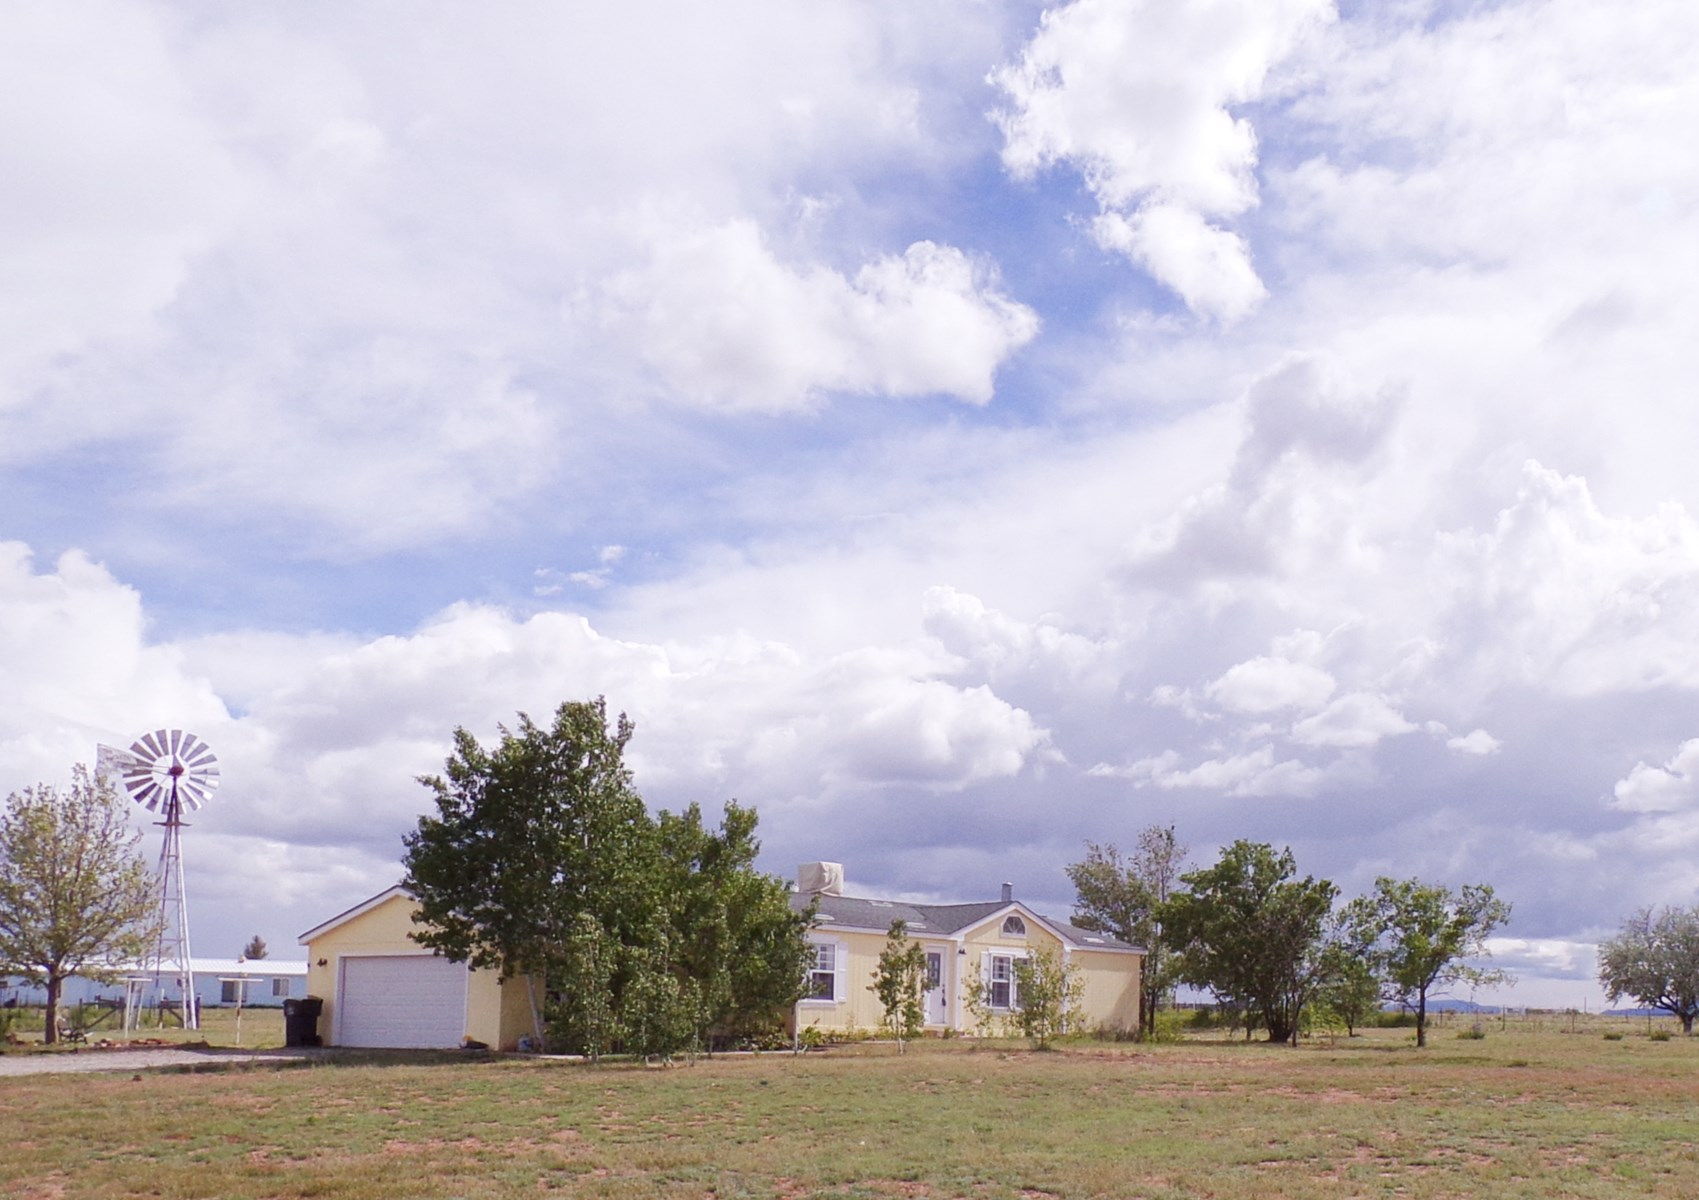 Rural Country Home Moriarty NM 2 Acres For Sale